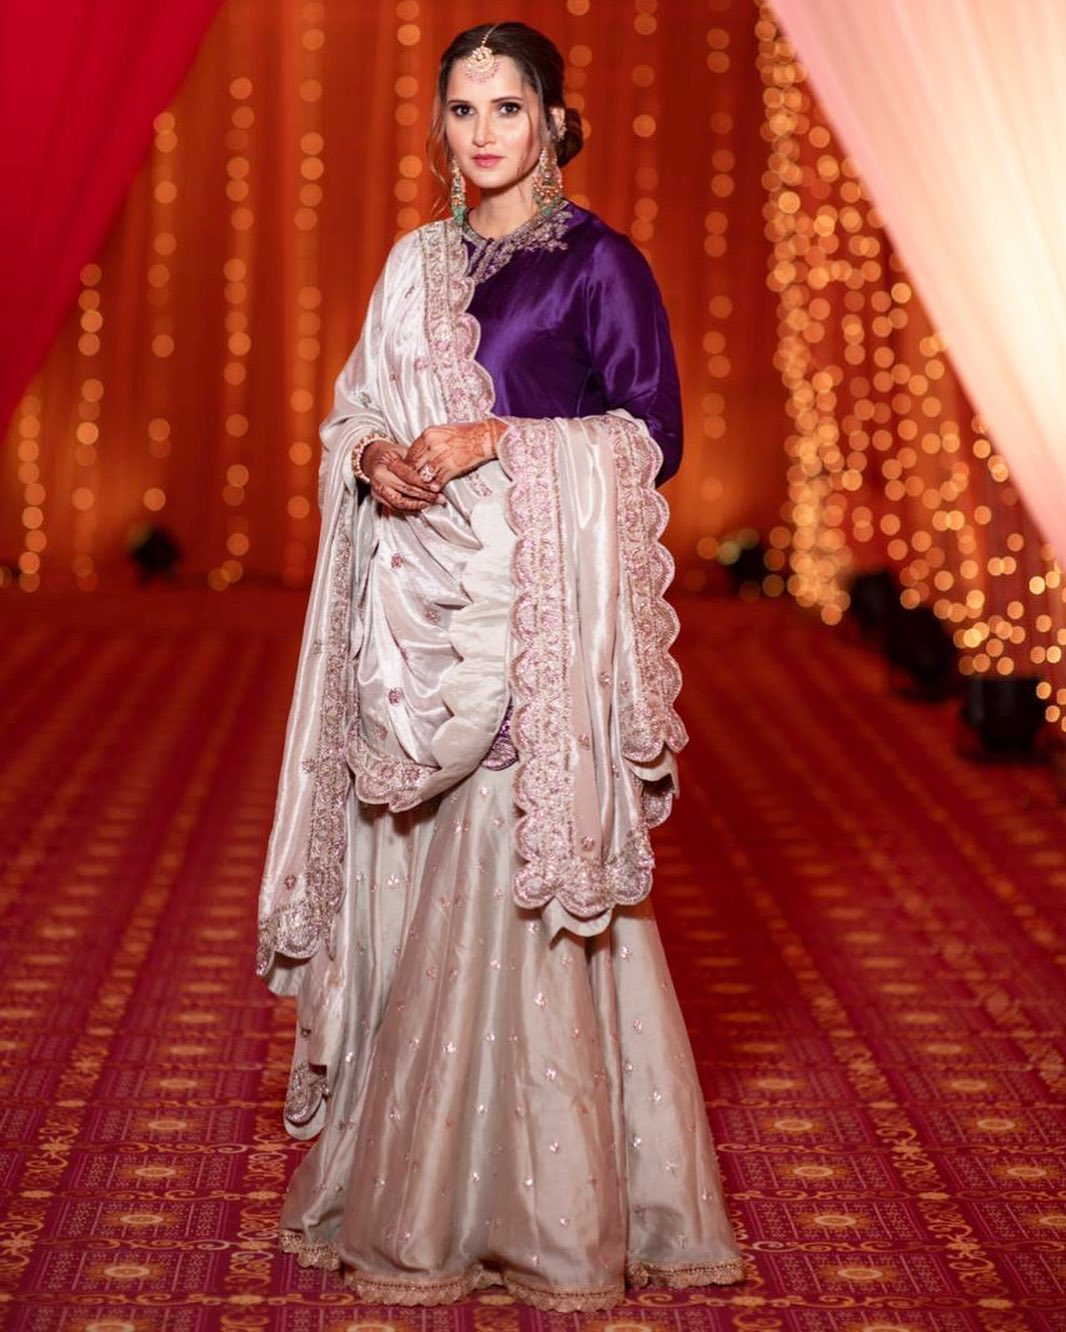 Sania Mirza's sister wedding, bridal outfit ideas